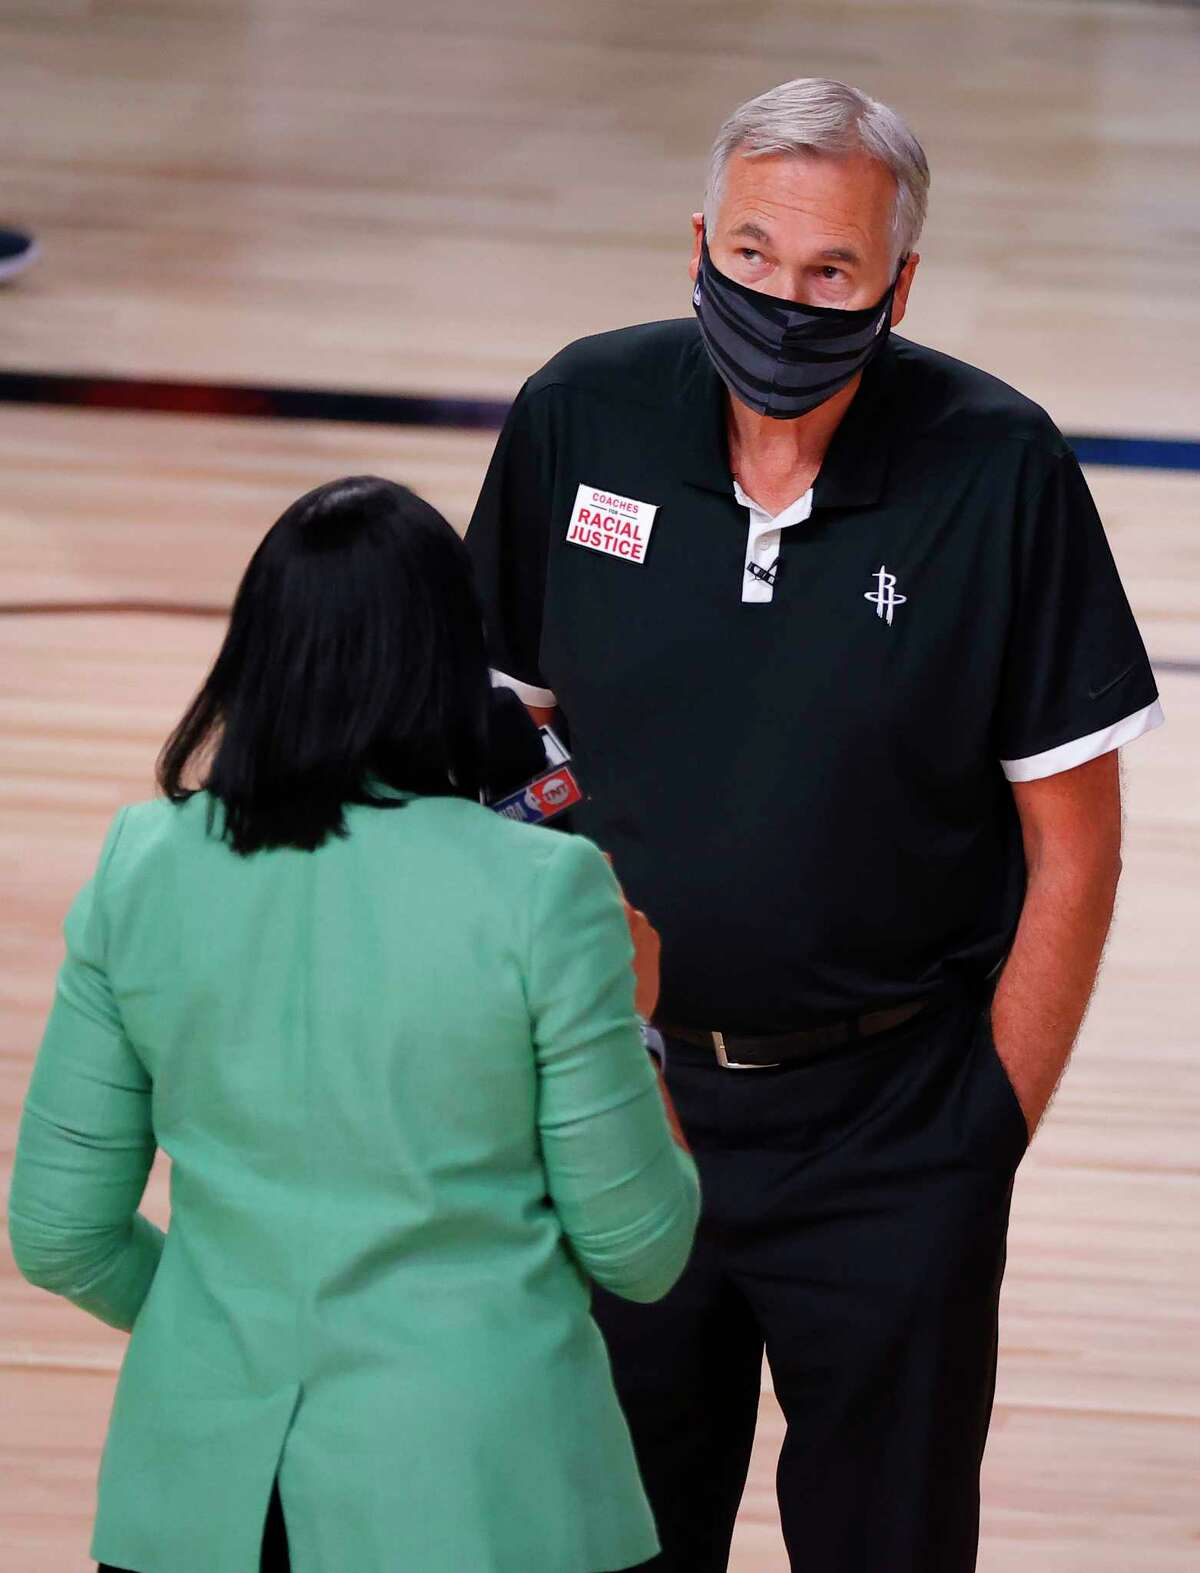 Houston Rockets head coach Mike D'Antoni, right, is interviewed after the first quarter of Game 4 of an NBA basketball first-round playoff series against the Oklahoma City Thunder, Monday, Aug. 24, 2020, in Lake Buena Vista, Fla. (Kevin C. Cox/Pool Photo via AP)